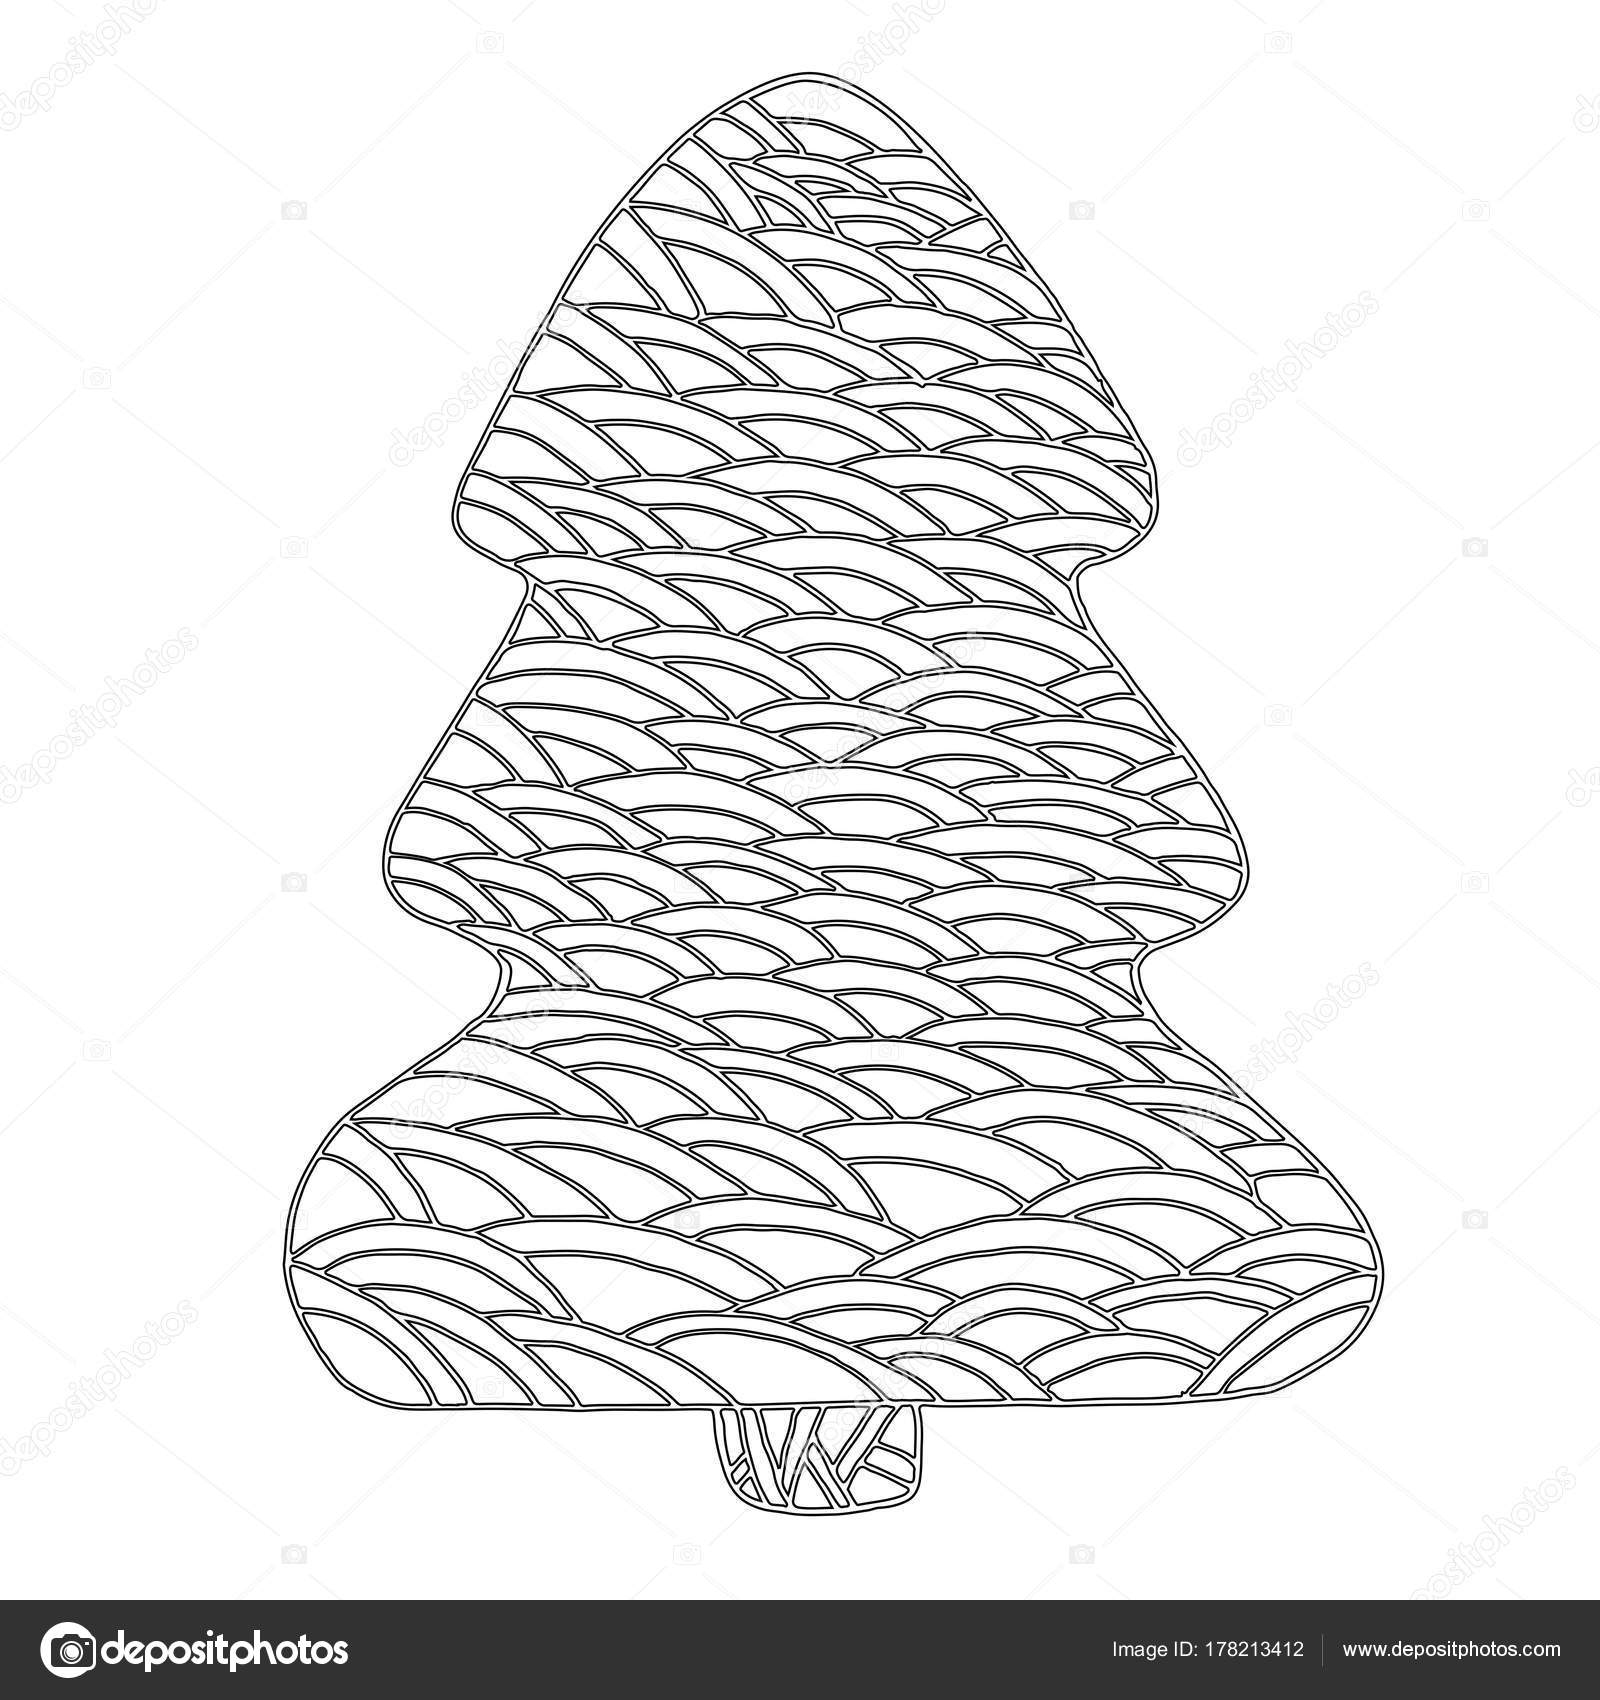 Coloring Page For Children And Adults Decorative Christmas Tree Doodle Isolated On White Background Cartoon Style Vector Hand Drawing Card With Beautiful